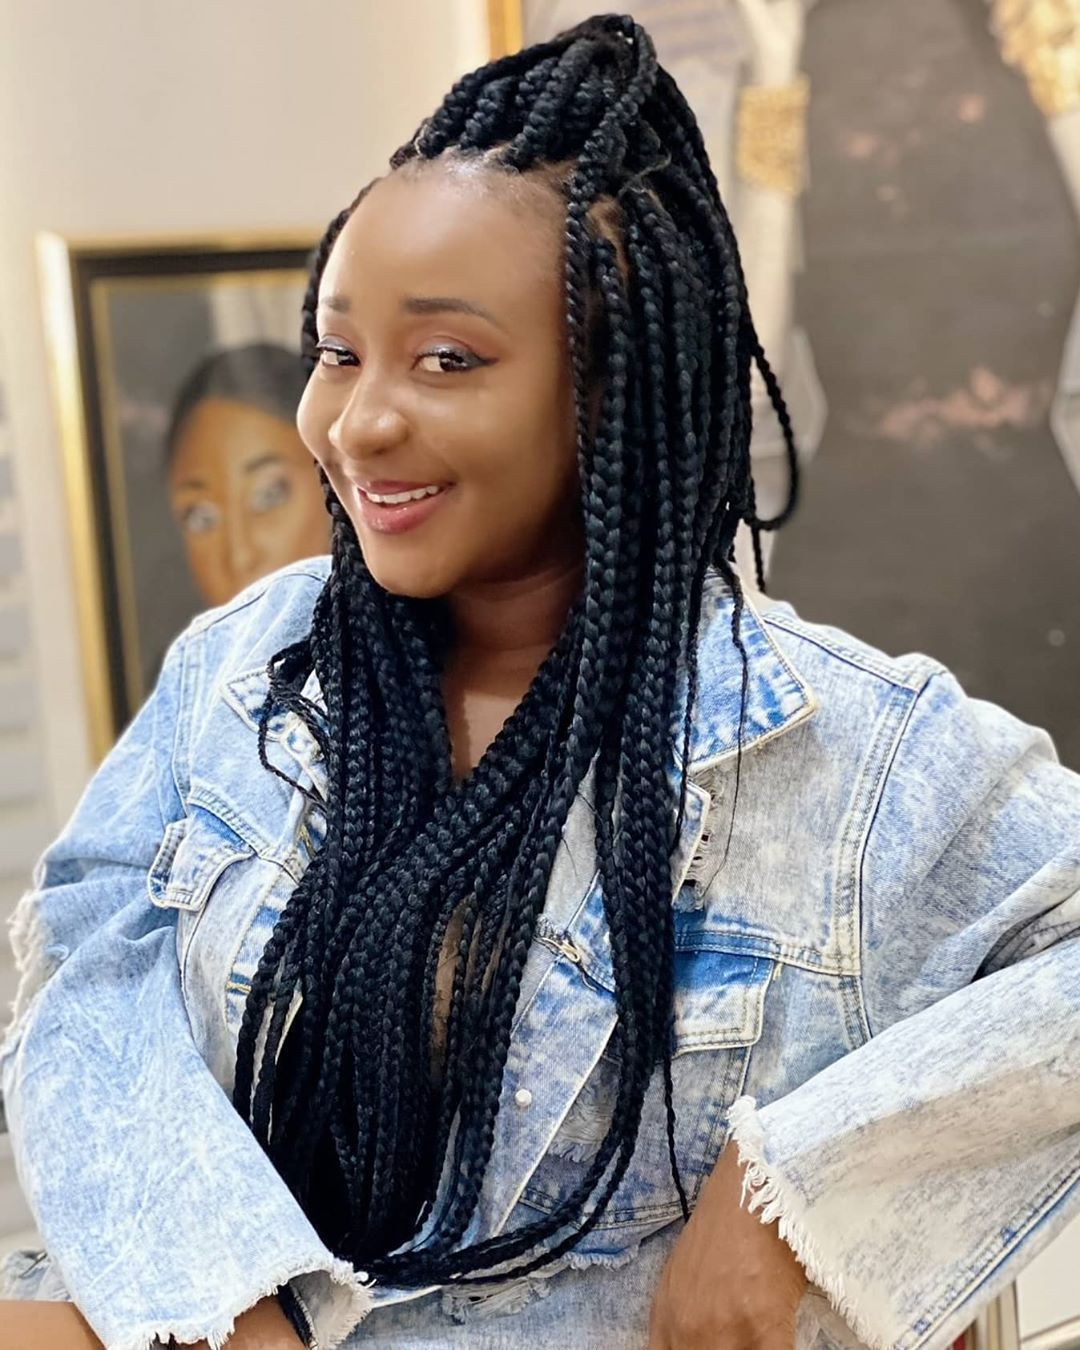 Ini Edo Blesses The Lives Of Dozens Of Her Fans With N10 000 Each Braided Hairstyles For Black Women Black Women Hairstyles Actresses